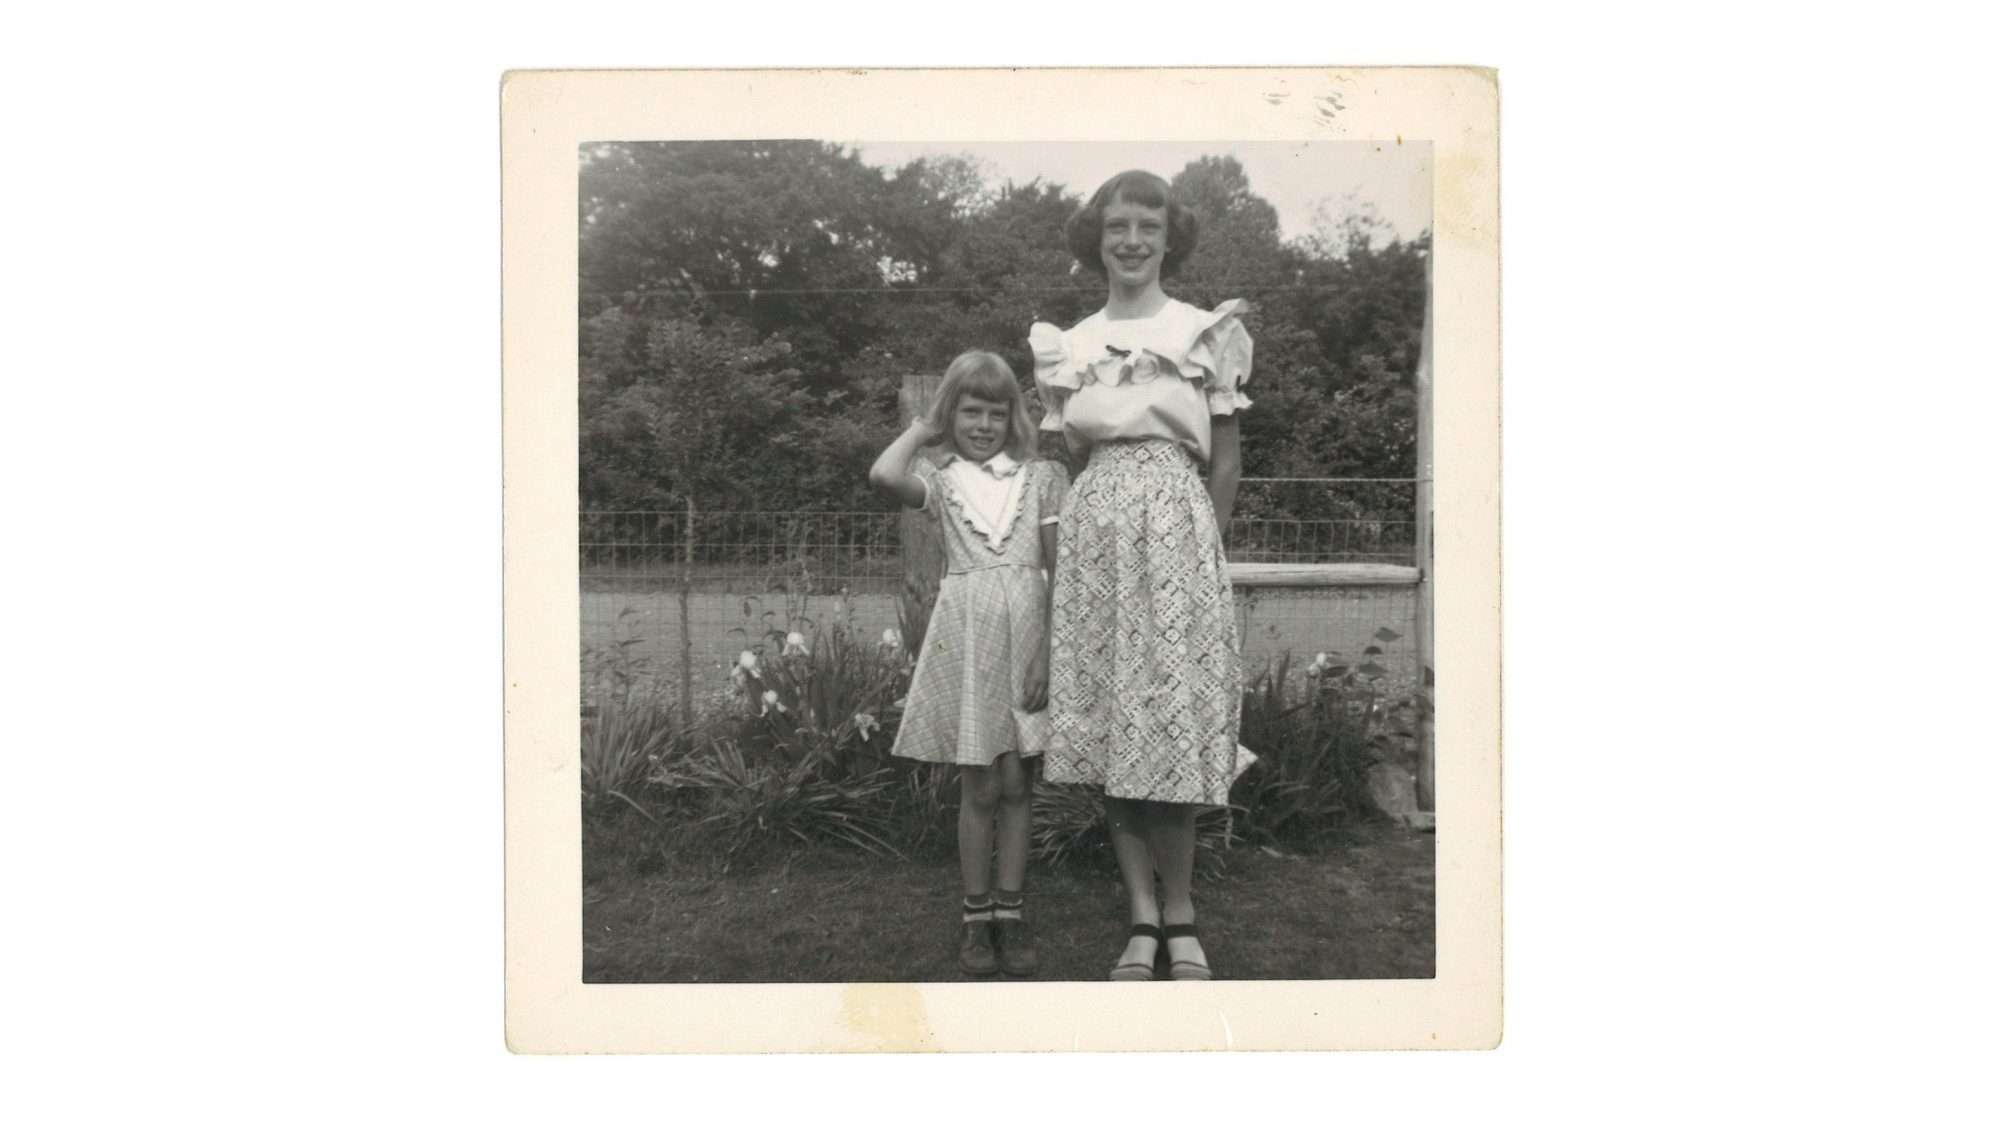 Pat English Garner and Sister Doris Ellen English Quasny